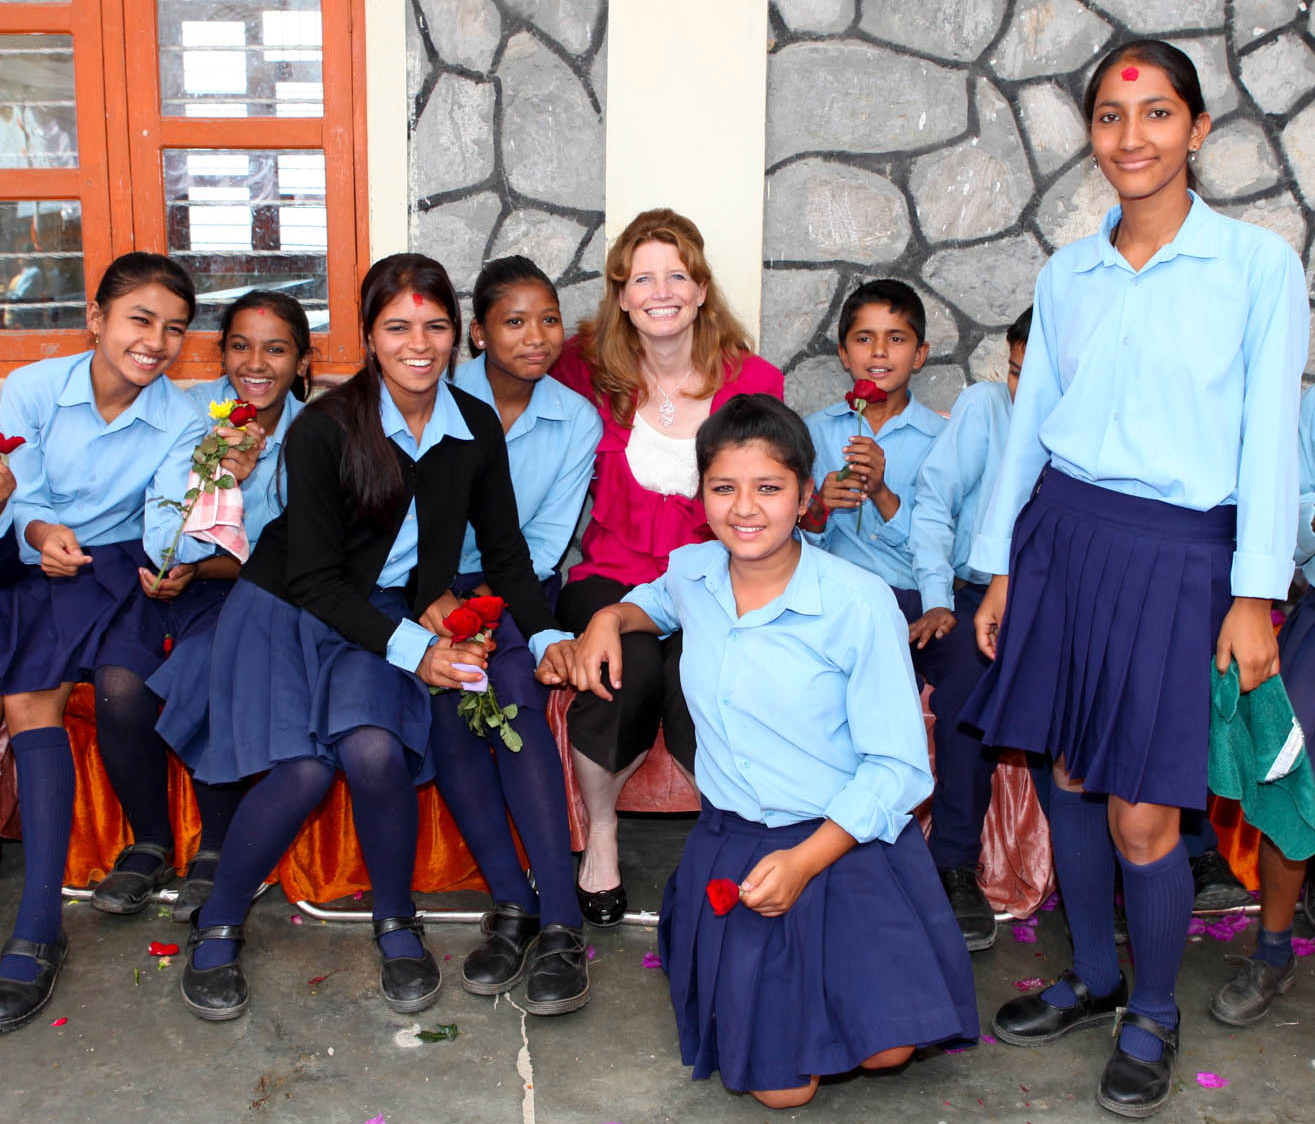 Qualcomm's Shawn Covell with students from a Wireless Reach program in Nepal.